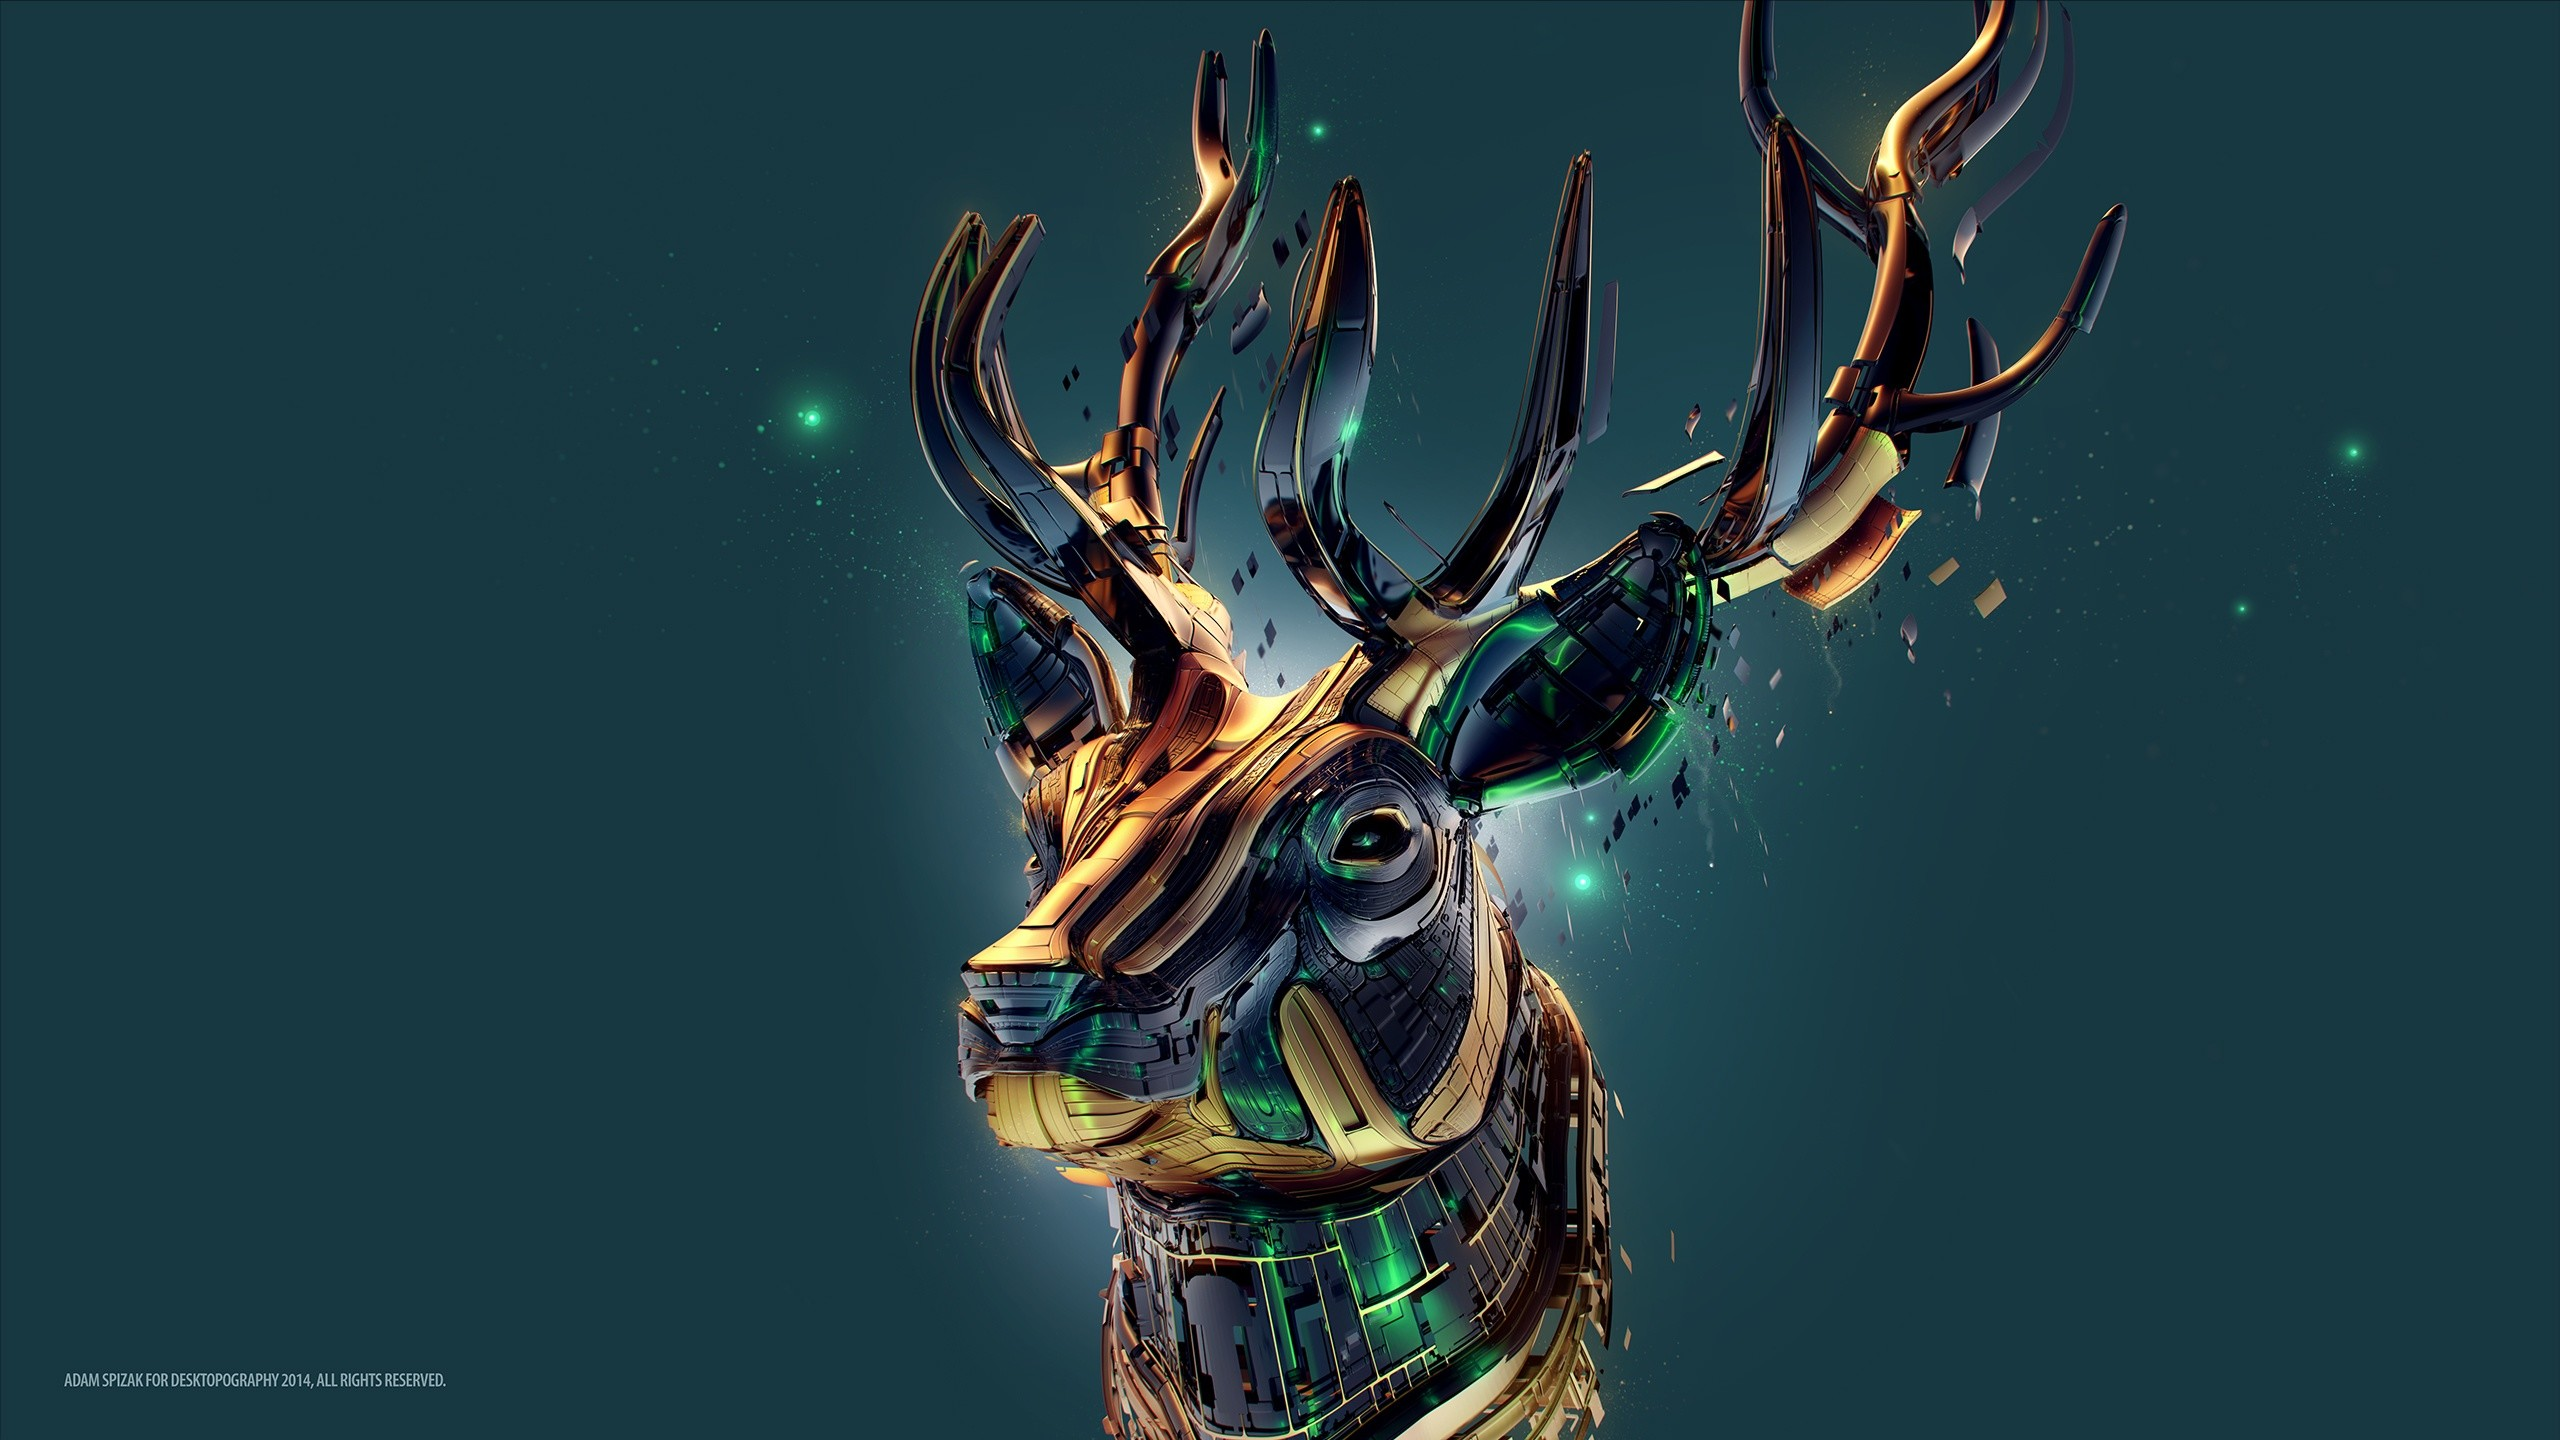 Cool deer wallpapers 53 images for Sfondi 2560x1440